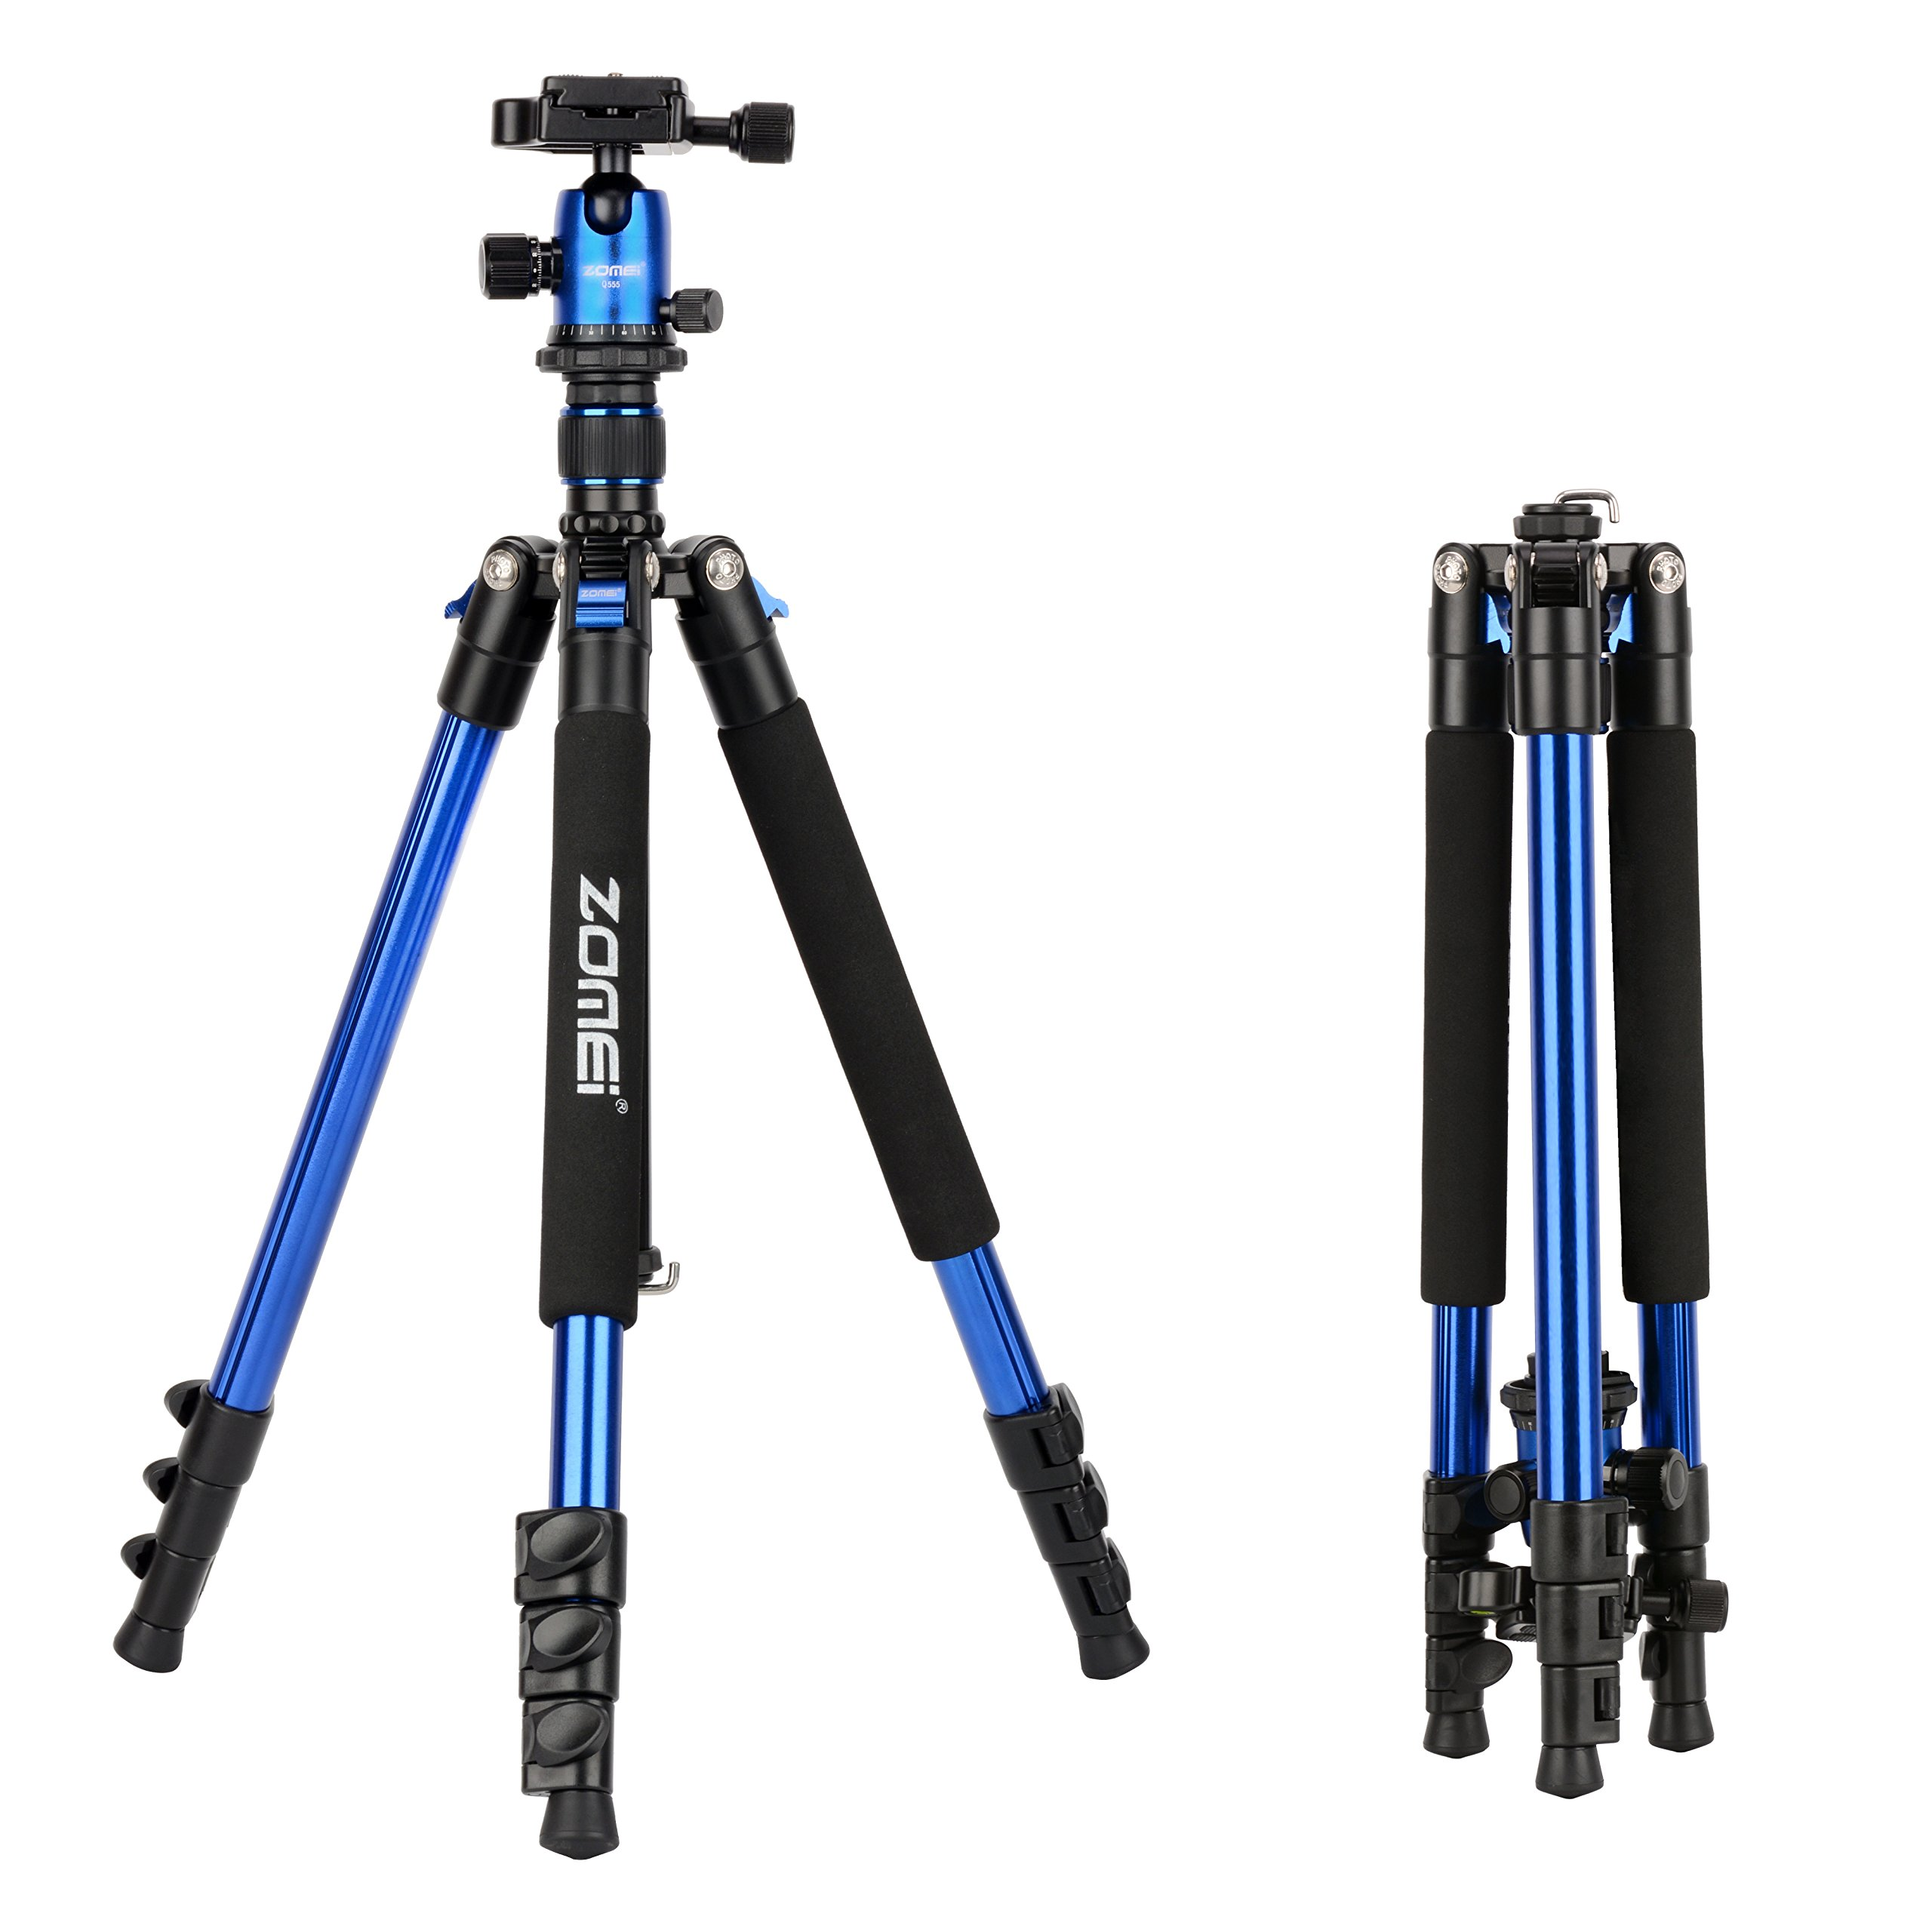 ZOMEi Q555 Lightweight Alluminum Alloy Camera Tripod with 360 Degree Ball Head + 1/4'' Quick Release Plate For Canon Nikon Sony Samsung Panasonic Olympus Fuji DSLR And Camcorders(Blue)